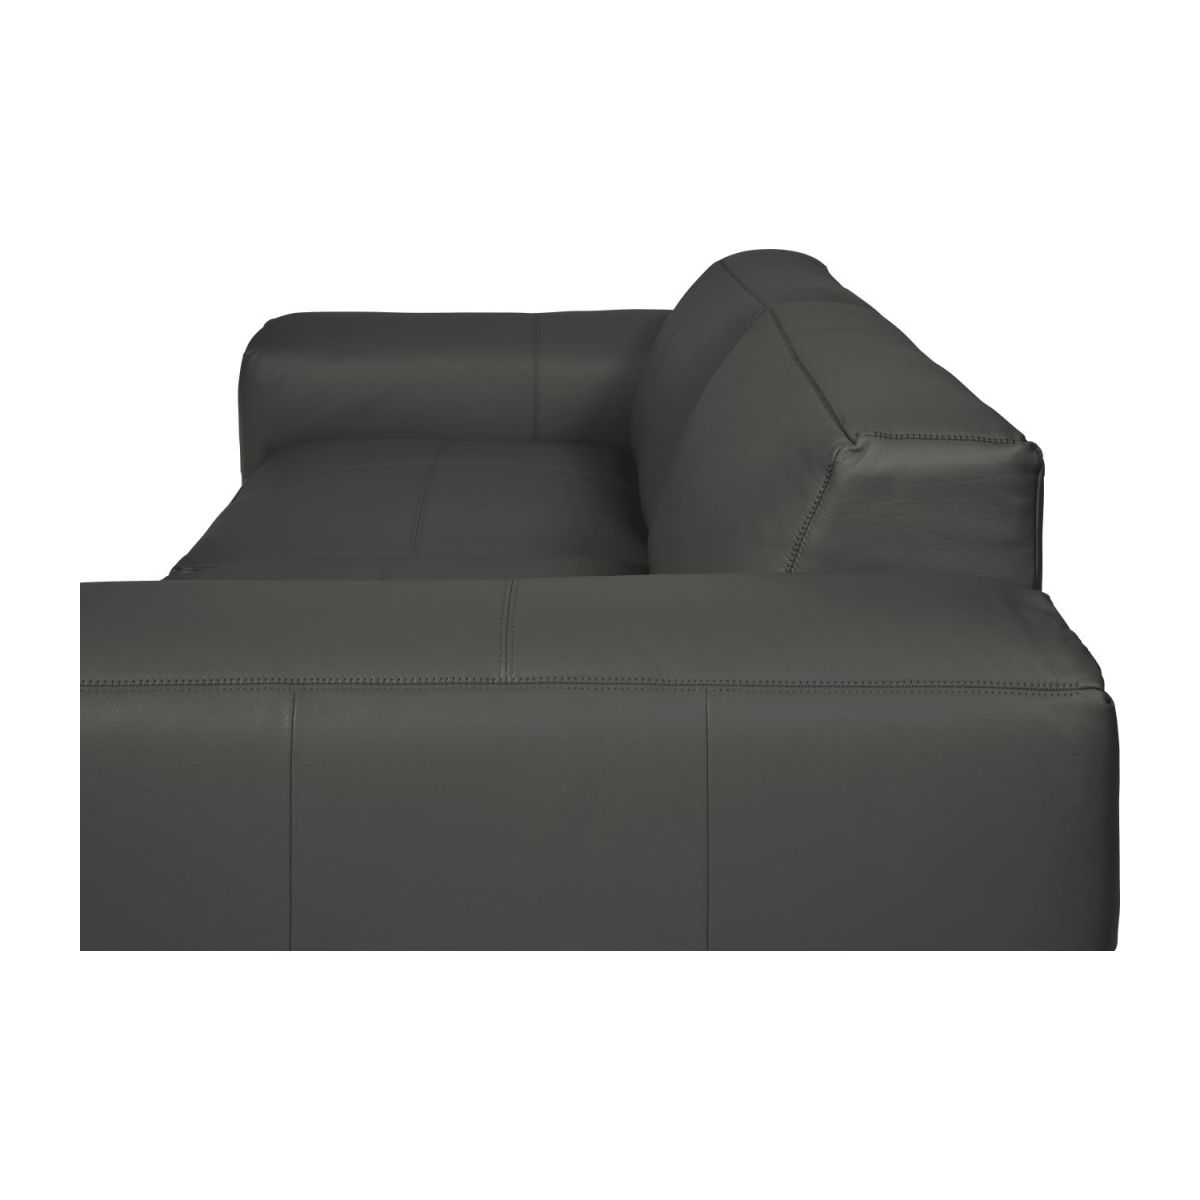 4 seater sofa in Savoy semi-aniline leather, grey n°10